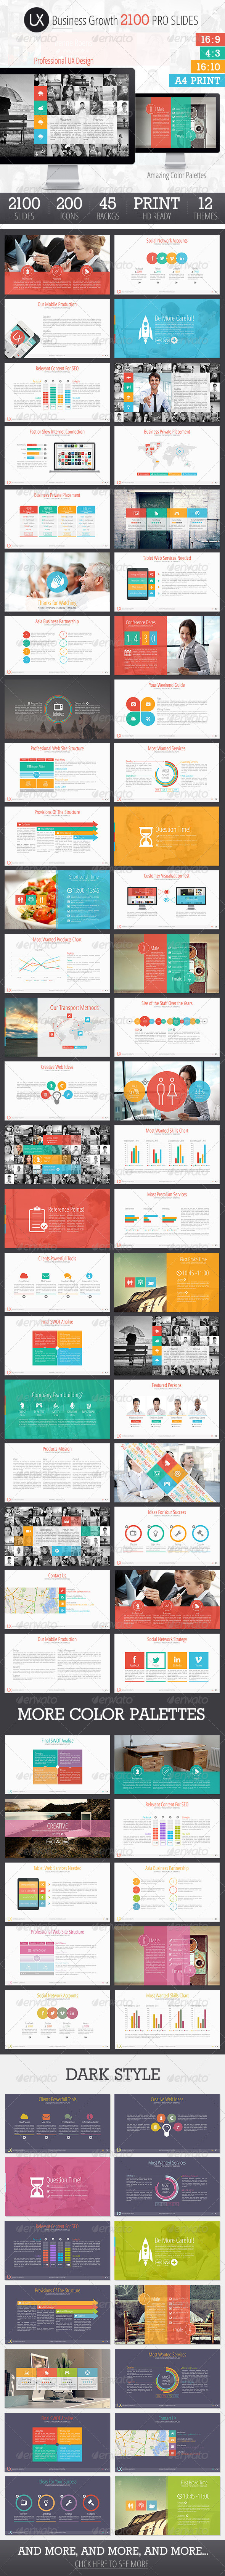 GraphicRiver UX Design Presentation Template 8182089